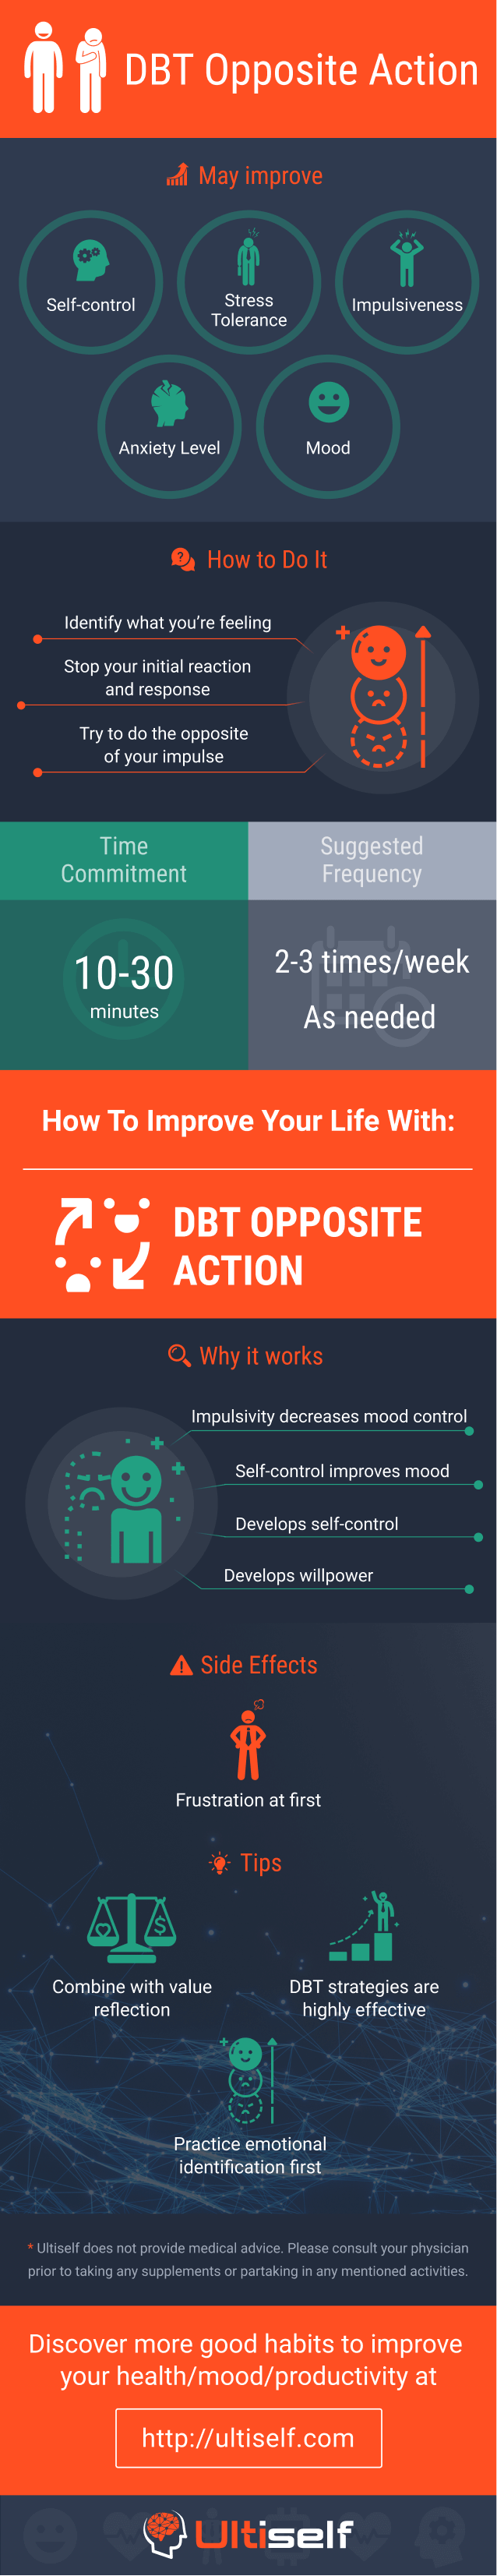 DBT Opposite Action infographic